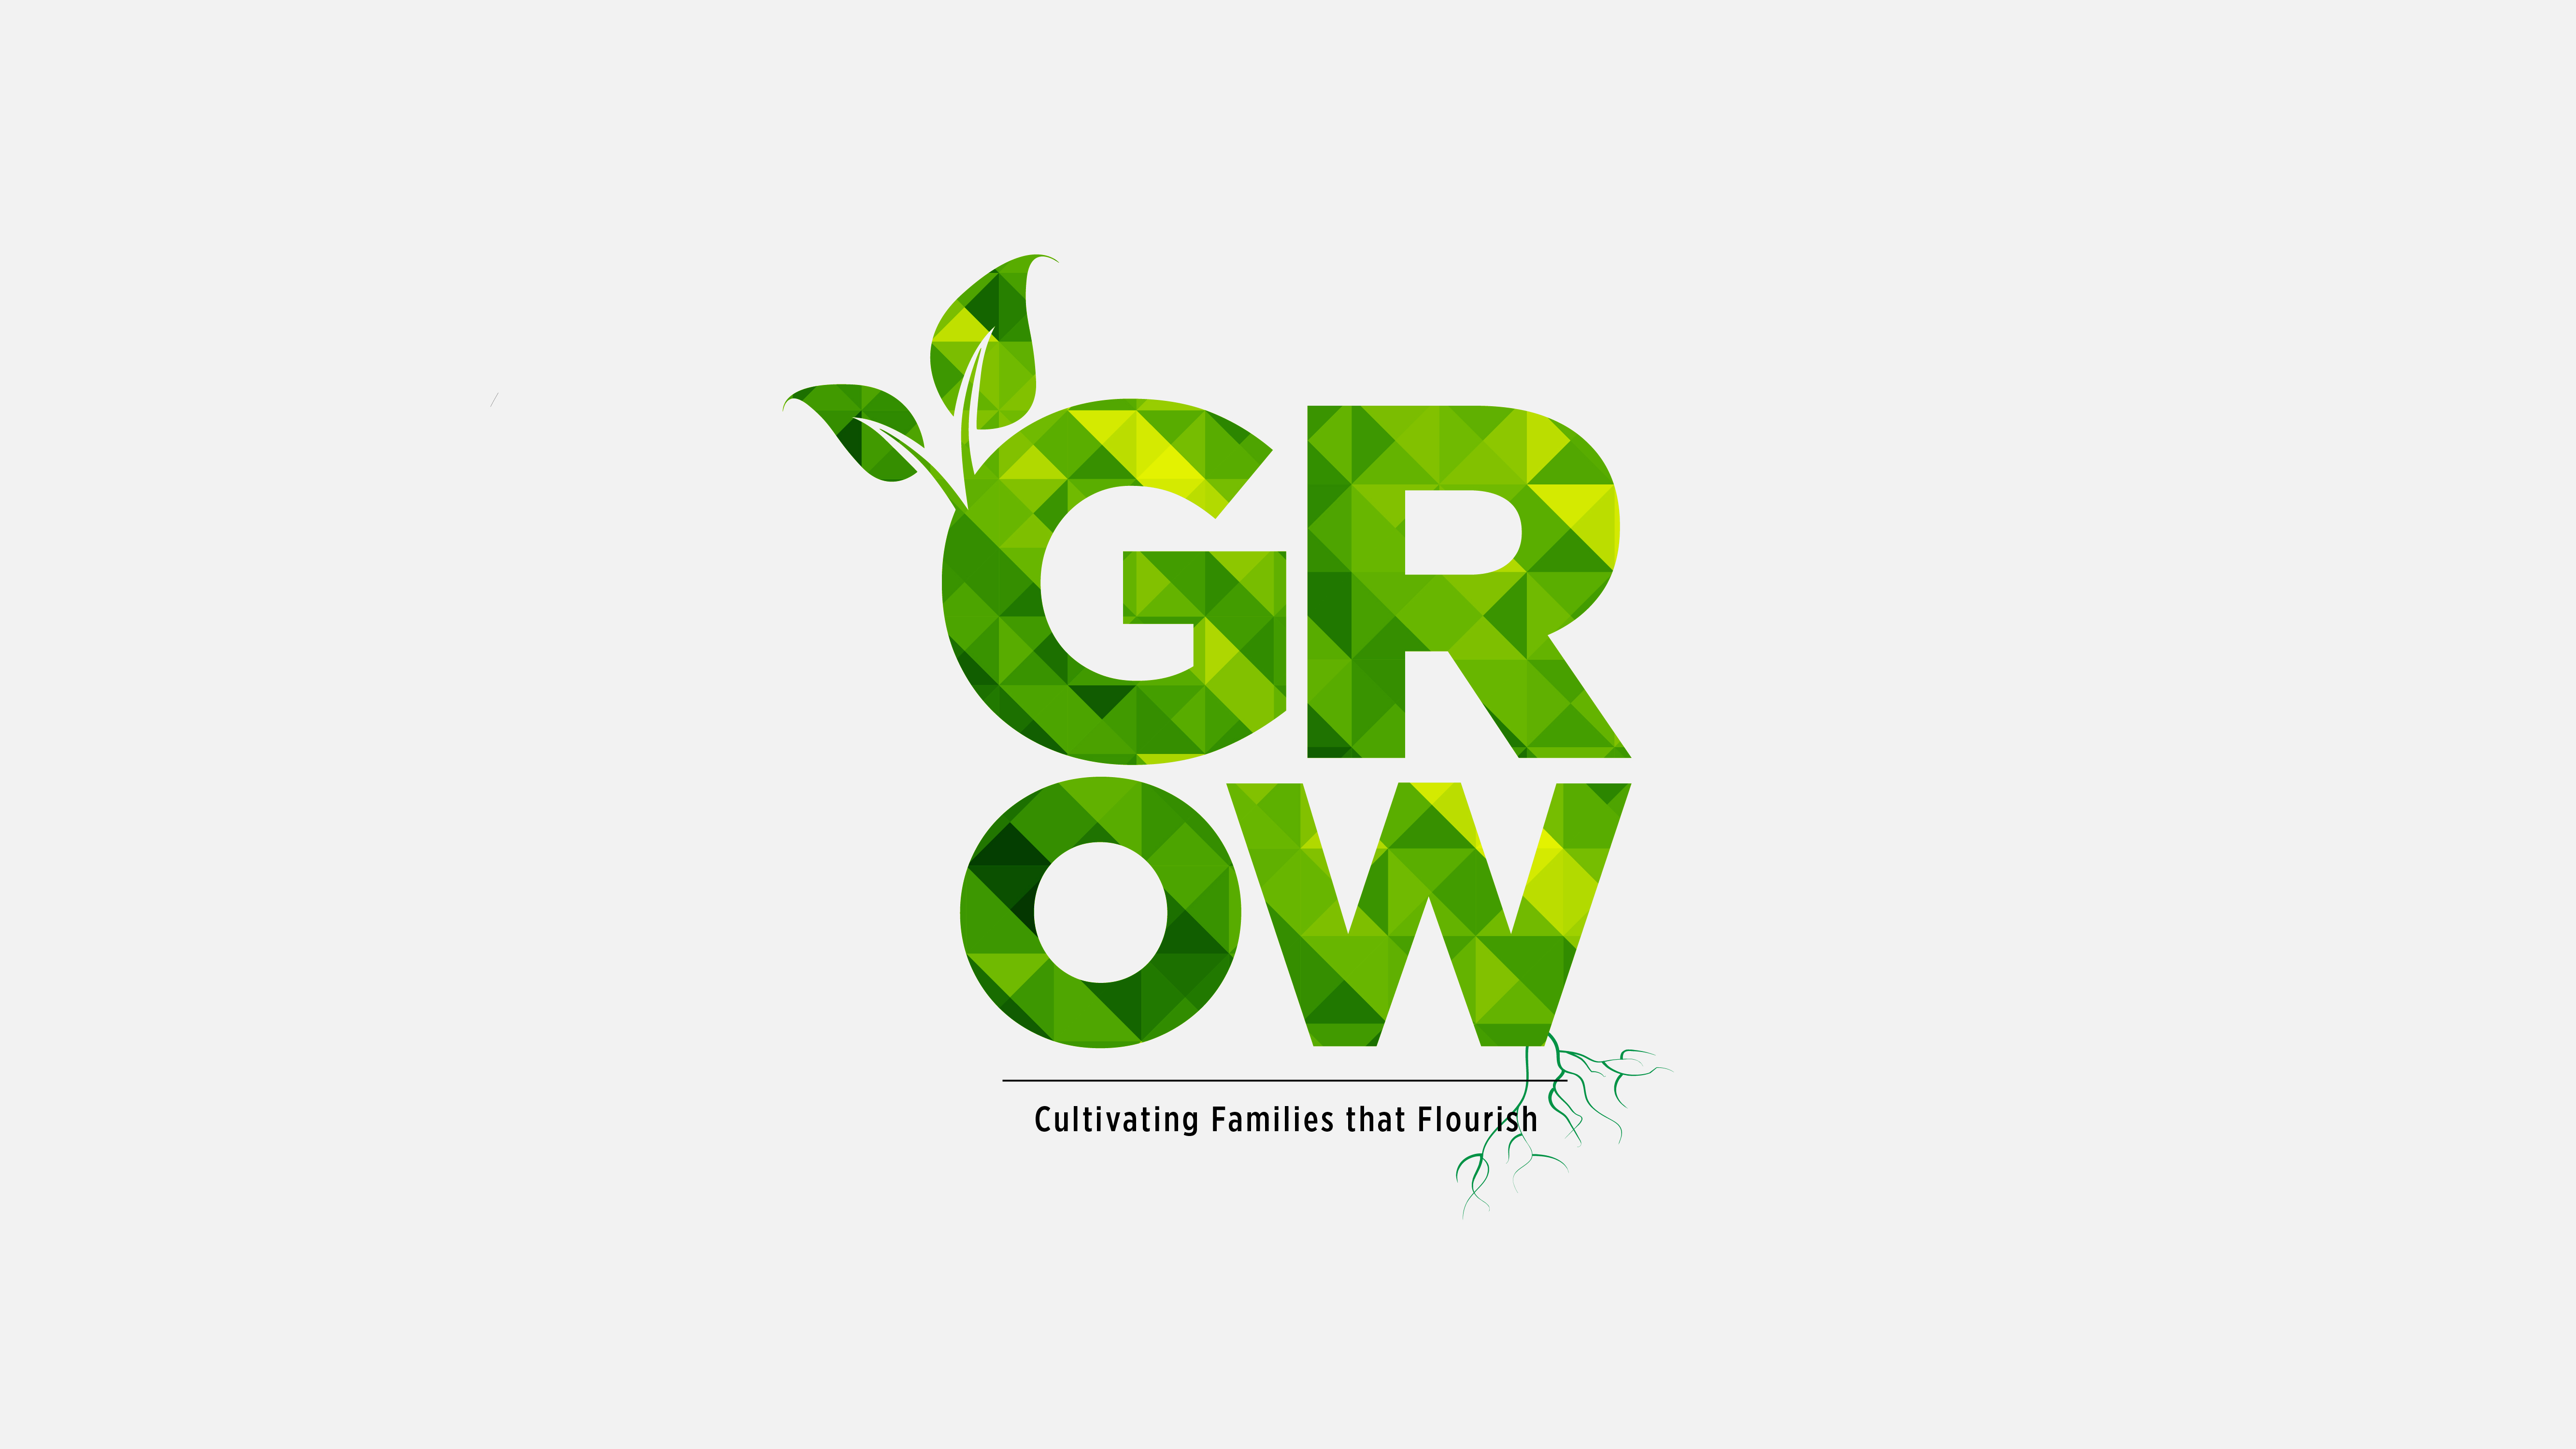 Grow conference logo4 01 01